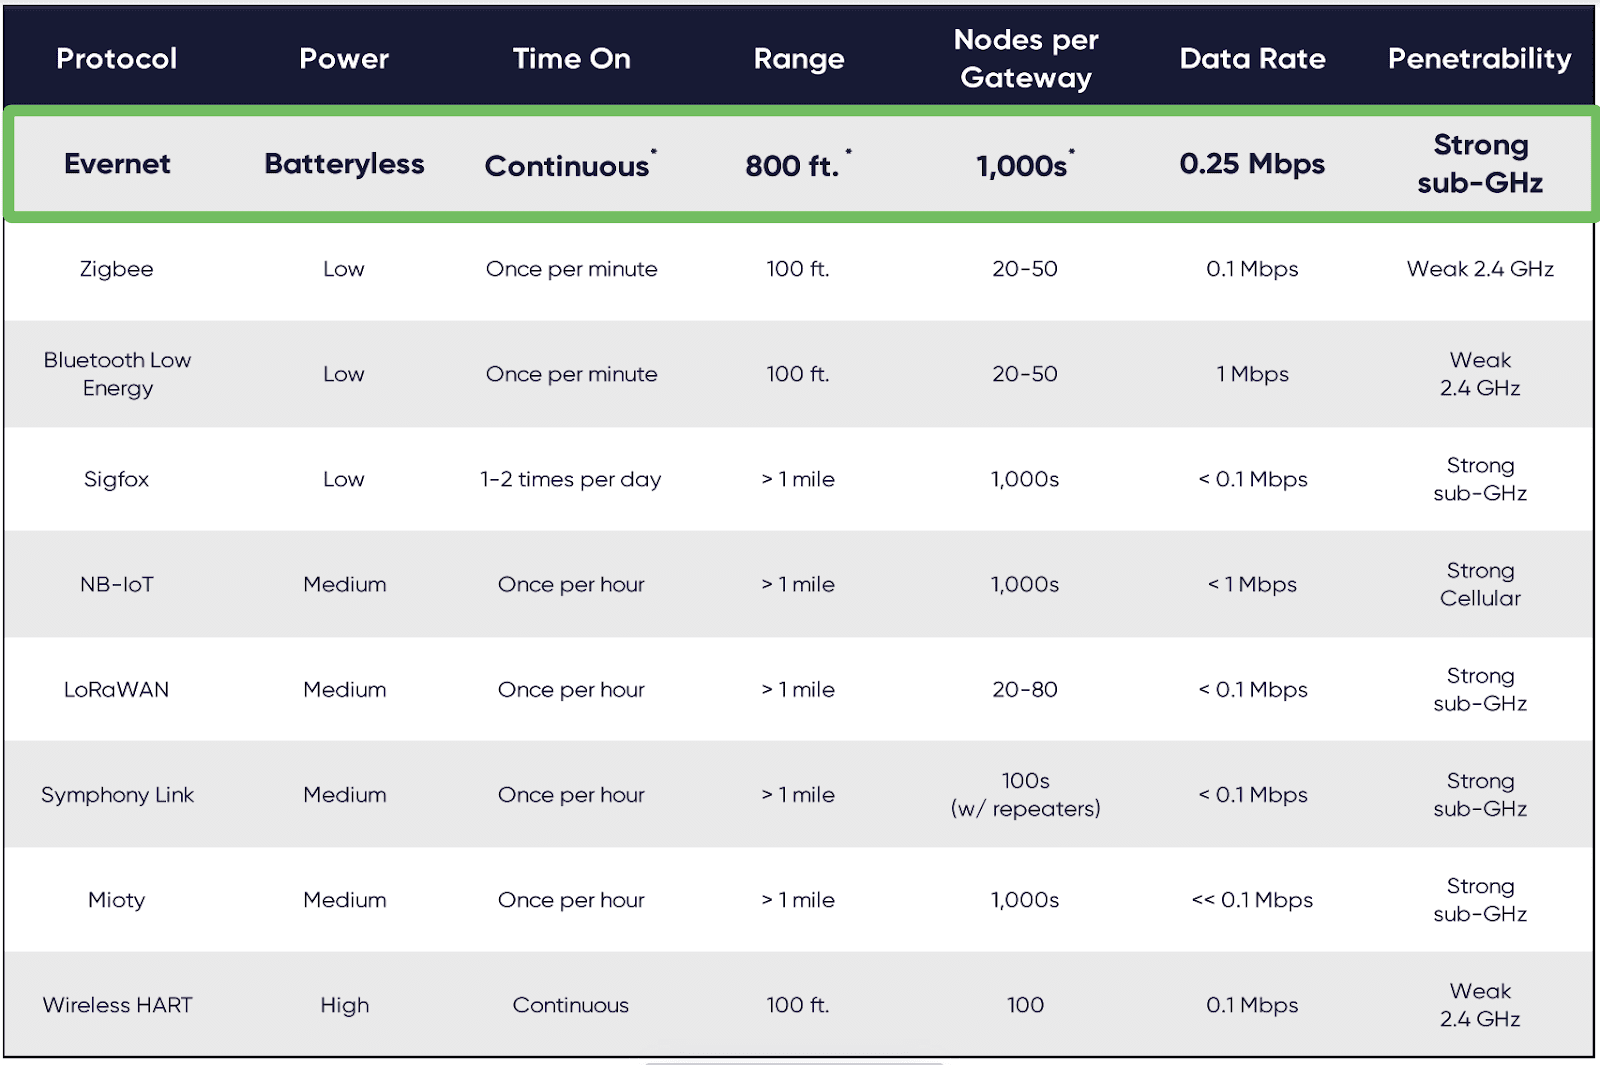 Table comparing competing low-power IoT protocols.